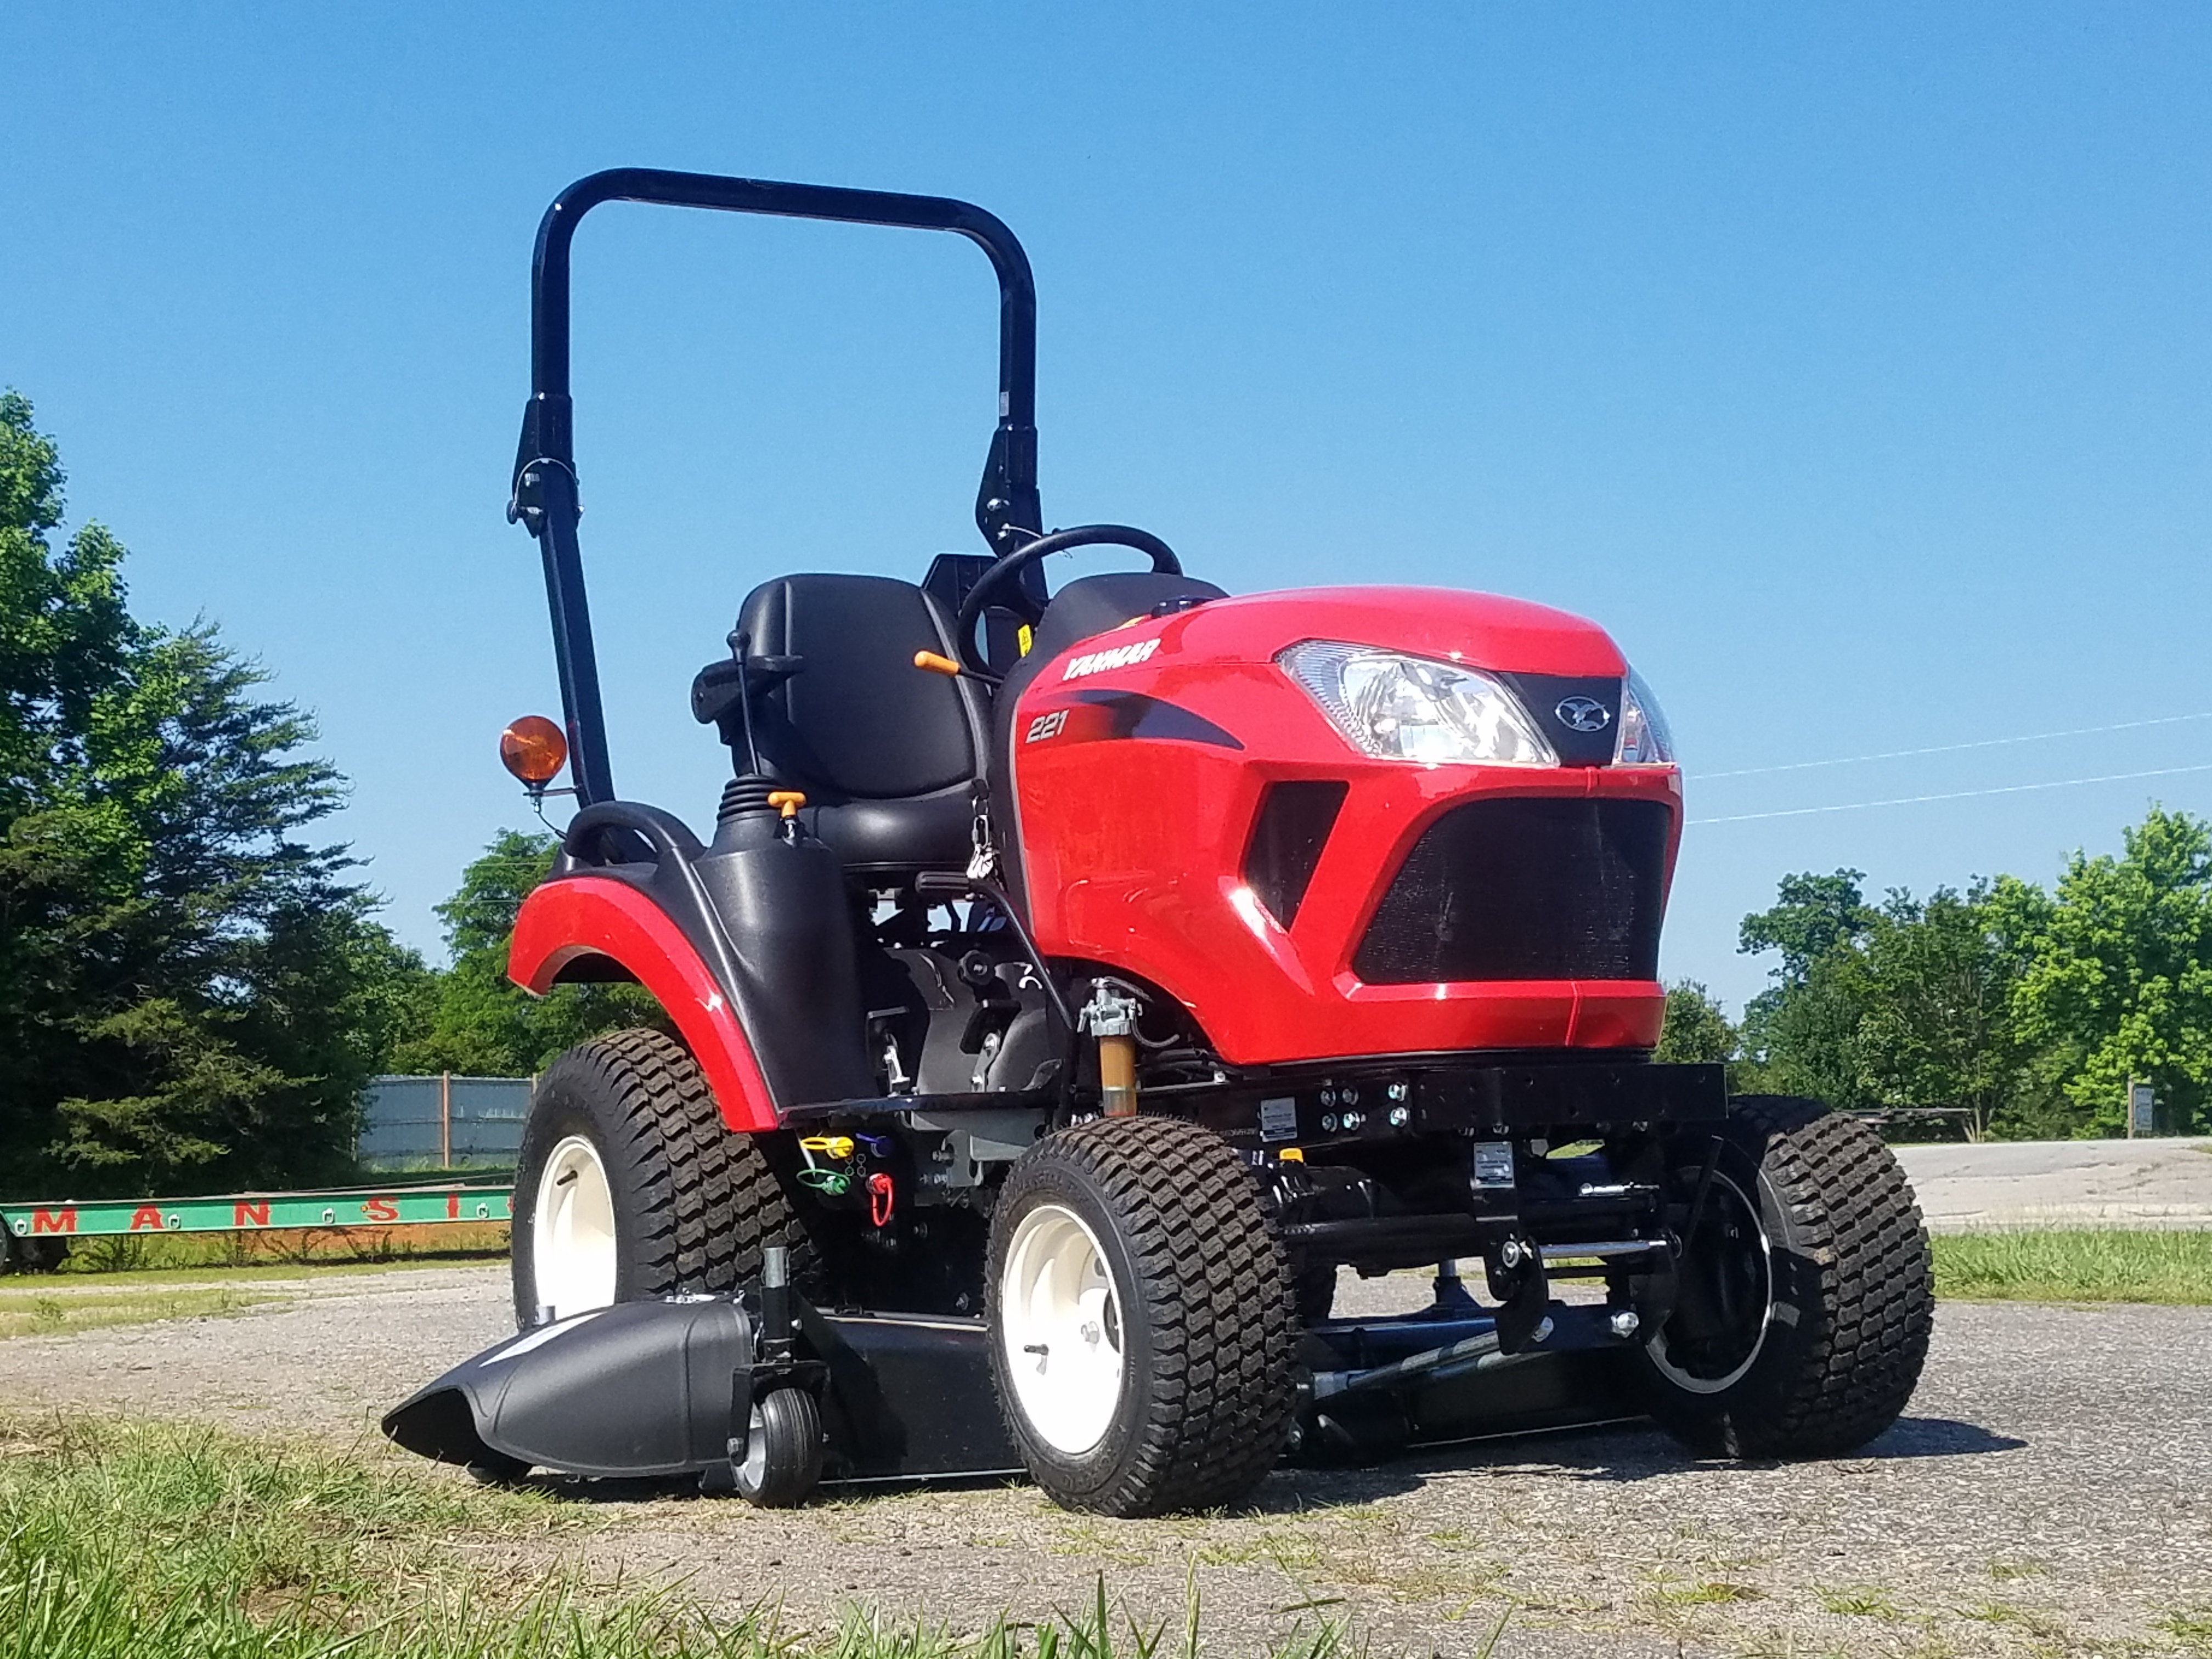 Yanmar Tractor Cooling System Parts : Yanmar diesel engine cooling system